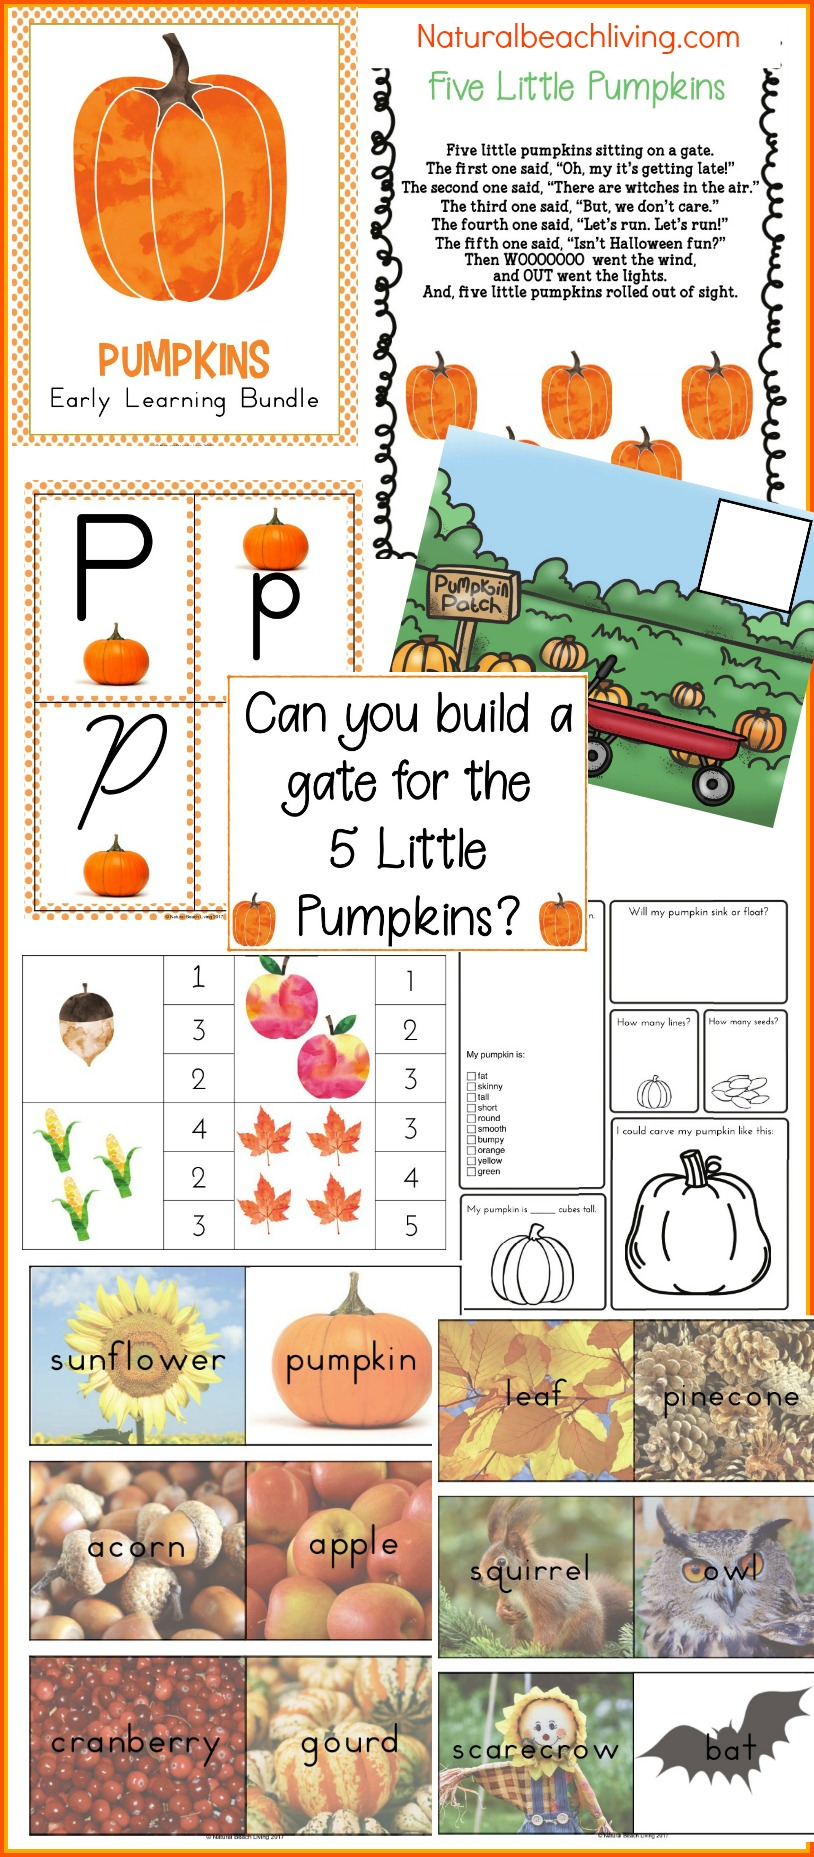 Pumpkin Activities for Kids, Pumpkin Theme Lesson Plan, Pumpkin Life cycle, Pumpkin Free Printables, Fall Science, FIAR, Pumpkin Printables, Pumpkin Coloring Pages, Pumpkin activities for kids, STEM